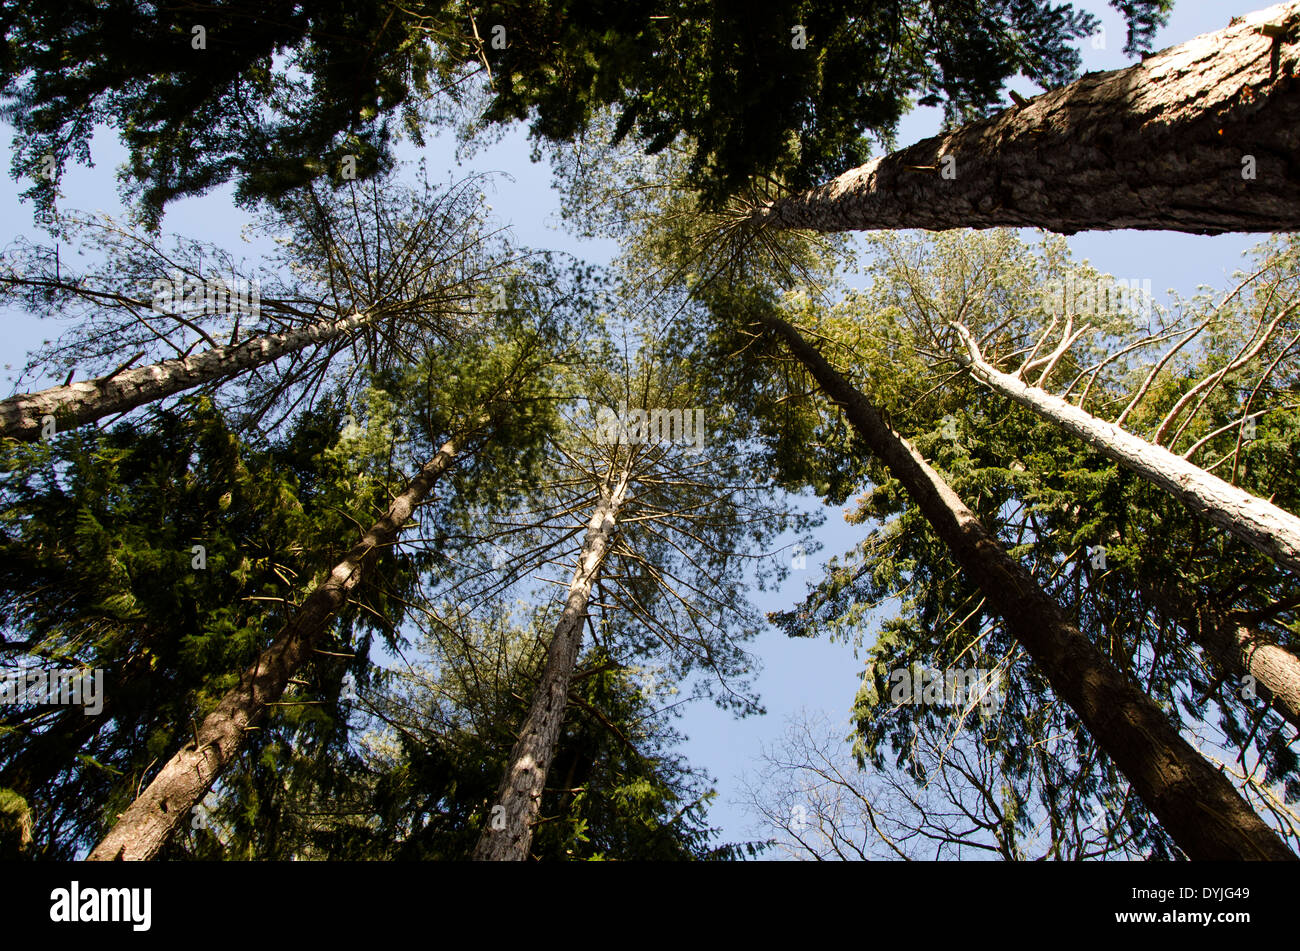 An upwards view of trees in a forest. - Stock Image